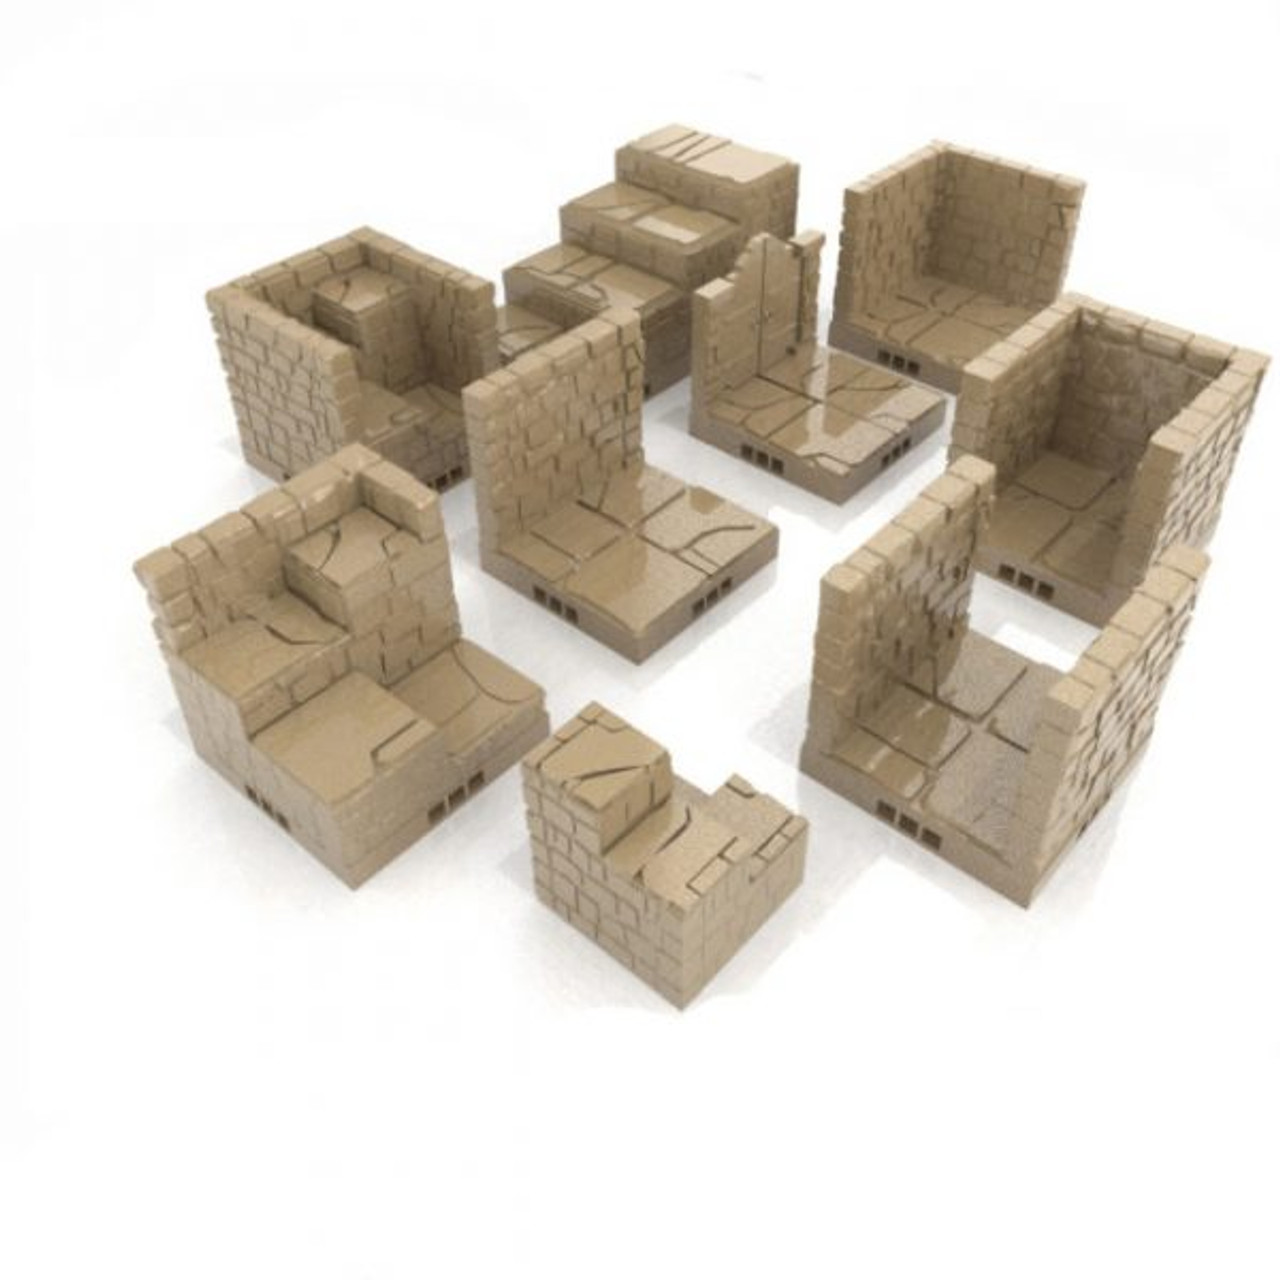 image relating to Printable Dungeon Tiles named Sq. Brick Dungeon Tiles